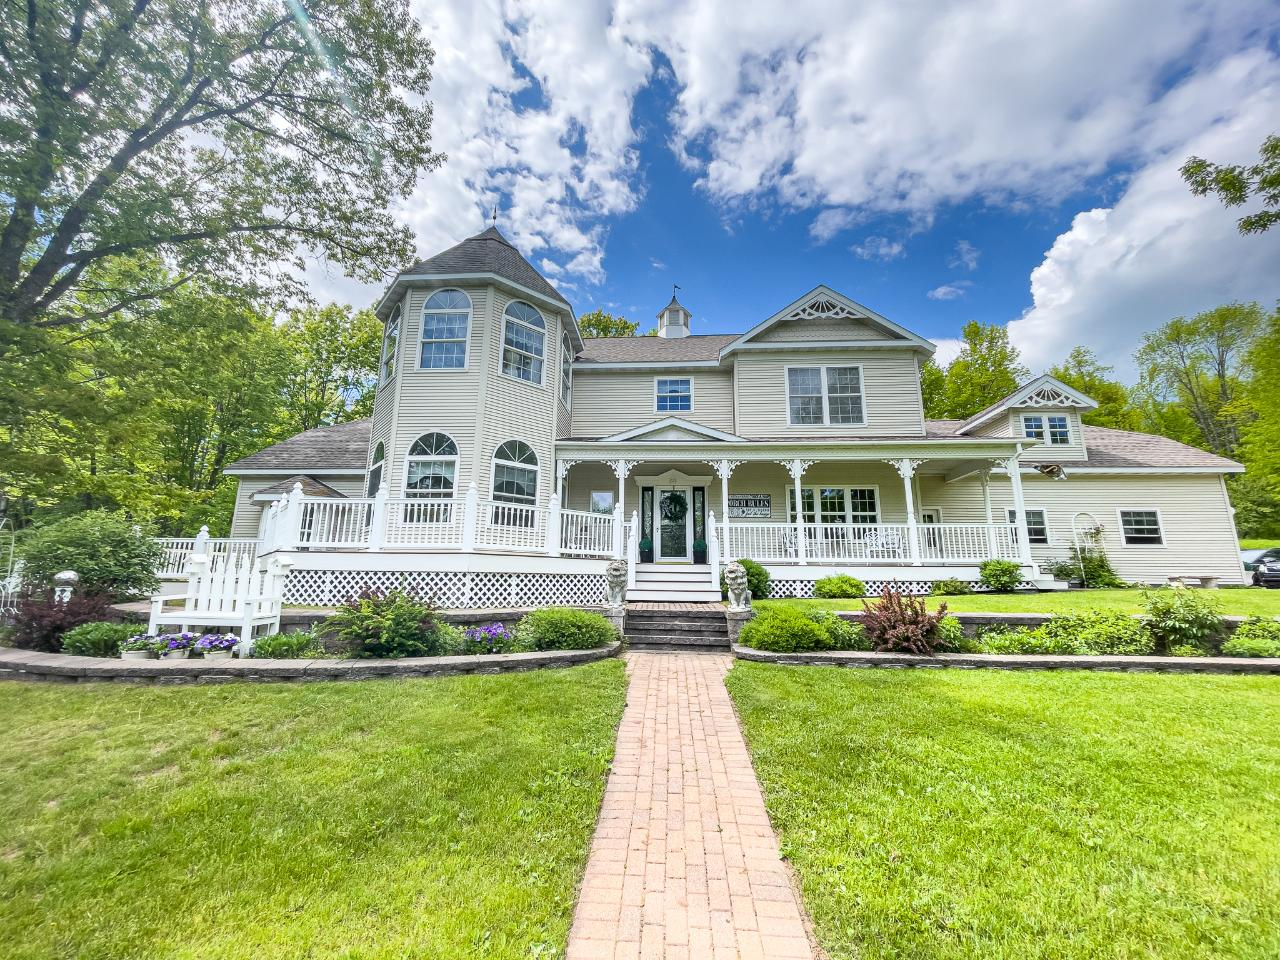 Tucked away on 10.45AC of wooded landscape & inspired by Victorian Home design, this custom-built 3bed/3ba masterpiece features dormers, classic wrap-around porch, decorative railings, ornate trim, stained glass additions, chandeliers, & two staircases. Every square foot exudes keen attention to detail & pride of ownership in this immaculate home. Walk in the front door & be met by the sprawling staircase leading to the impressive second-floor balcony. A sitting parlor with large bay windows adjoins the huge family room. Entertain in style in the formal dining room. A second staircase leads from the formal dining room to the master suite wing on the second floor. This master suite includes huge hobby room/office/library, en suite with fireplace, jacuzzi tub, shower, double vanity, & sleeping area w/sitting room overlooking the property. Classic design, quality construction & a gorgeous landscape all come together to form a truly compelling property for luxury living and entertaining.